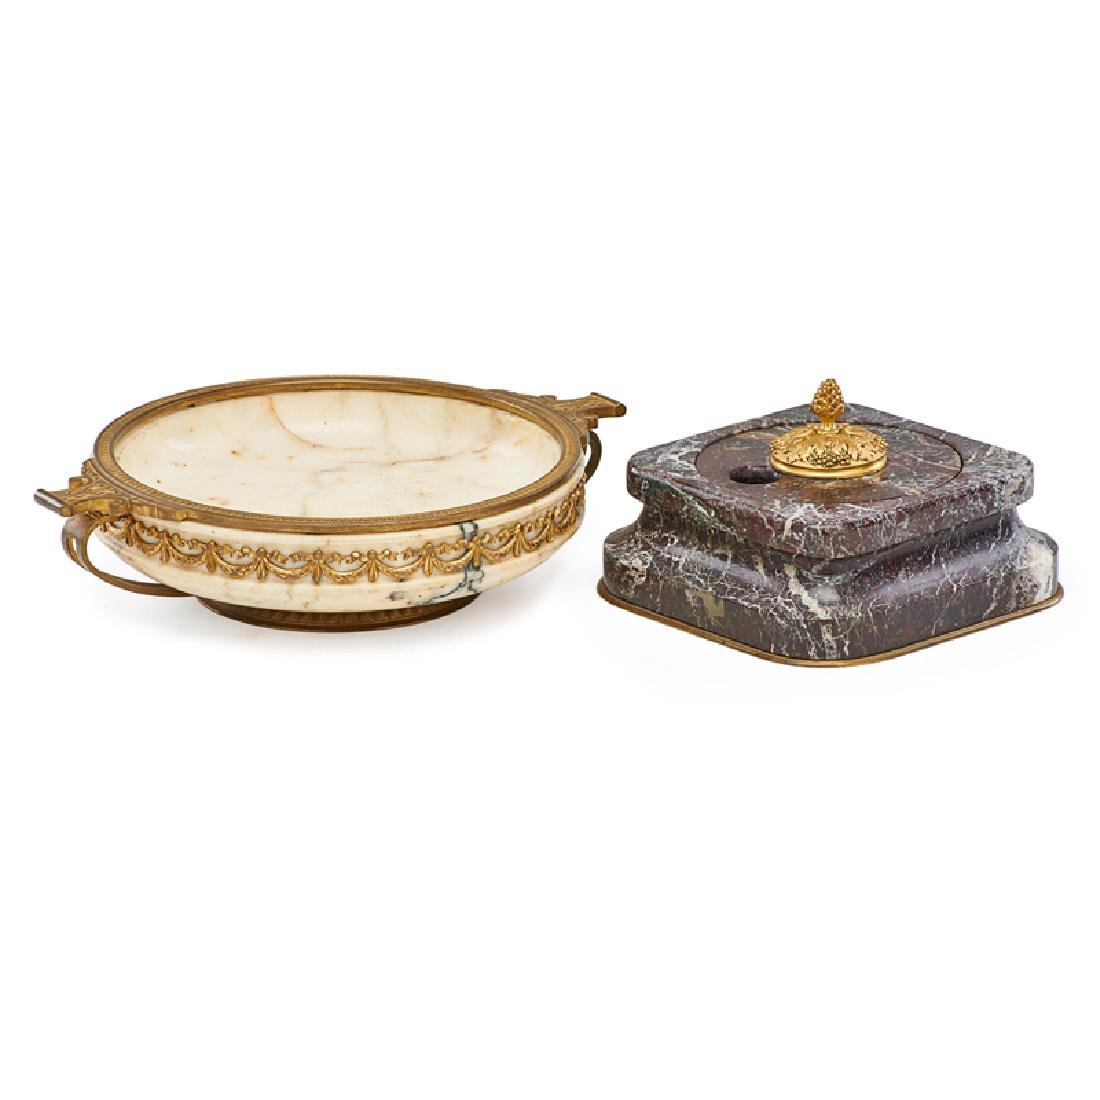 FRENCH INKWELL AND LOW BOWL